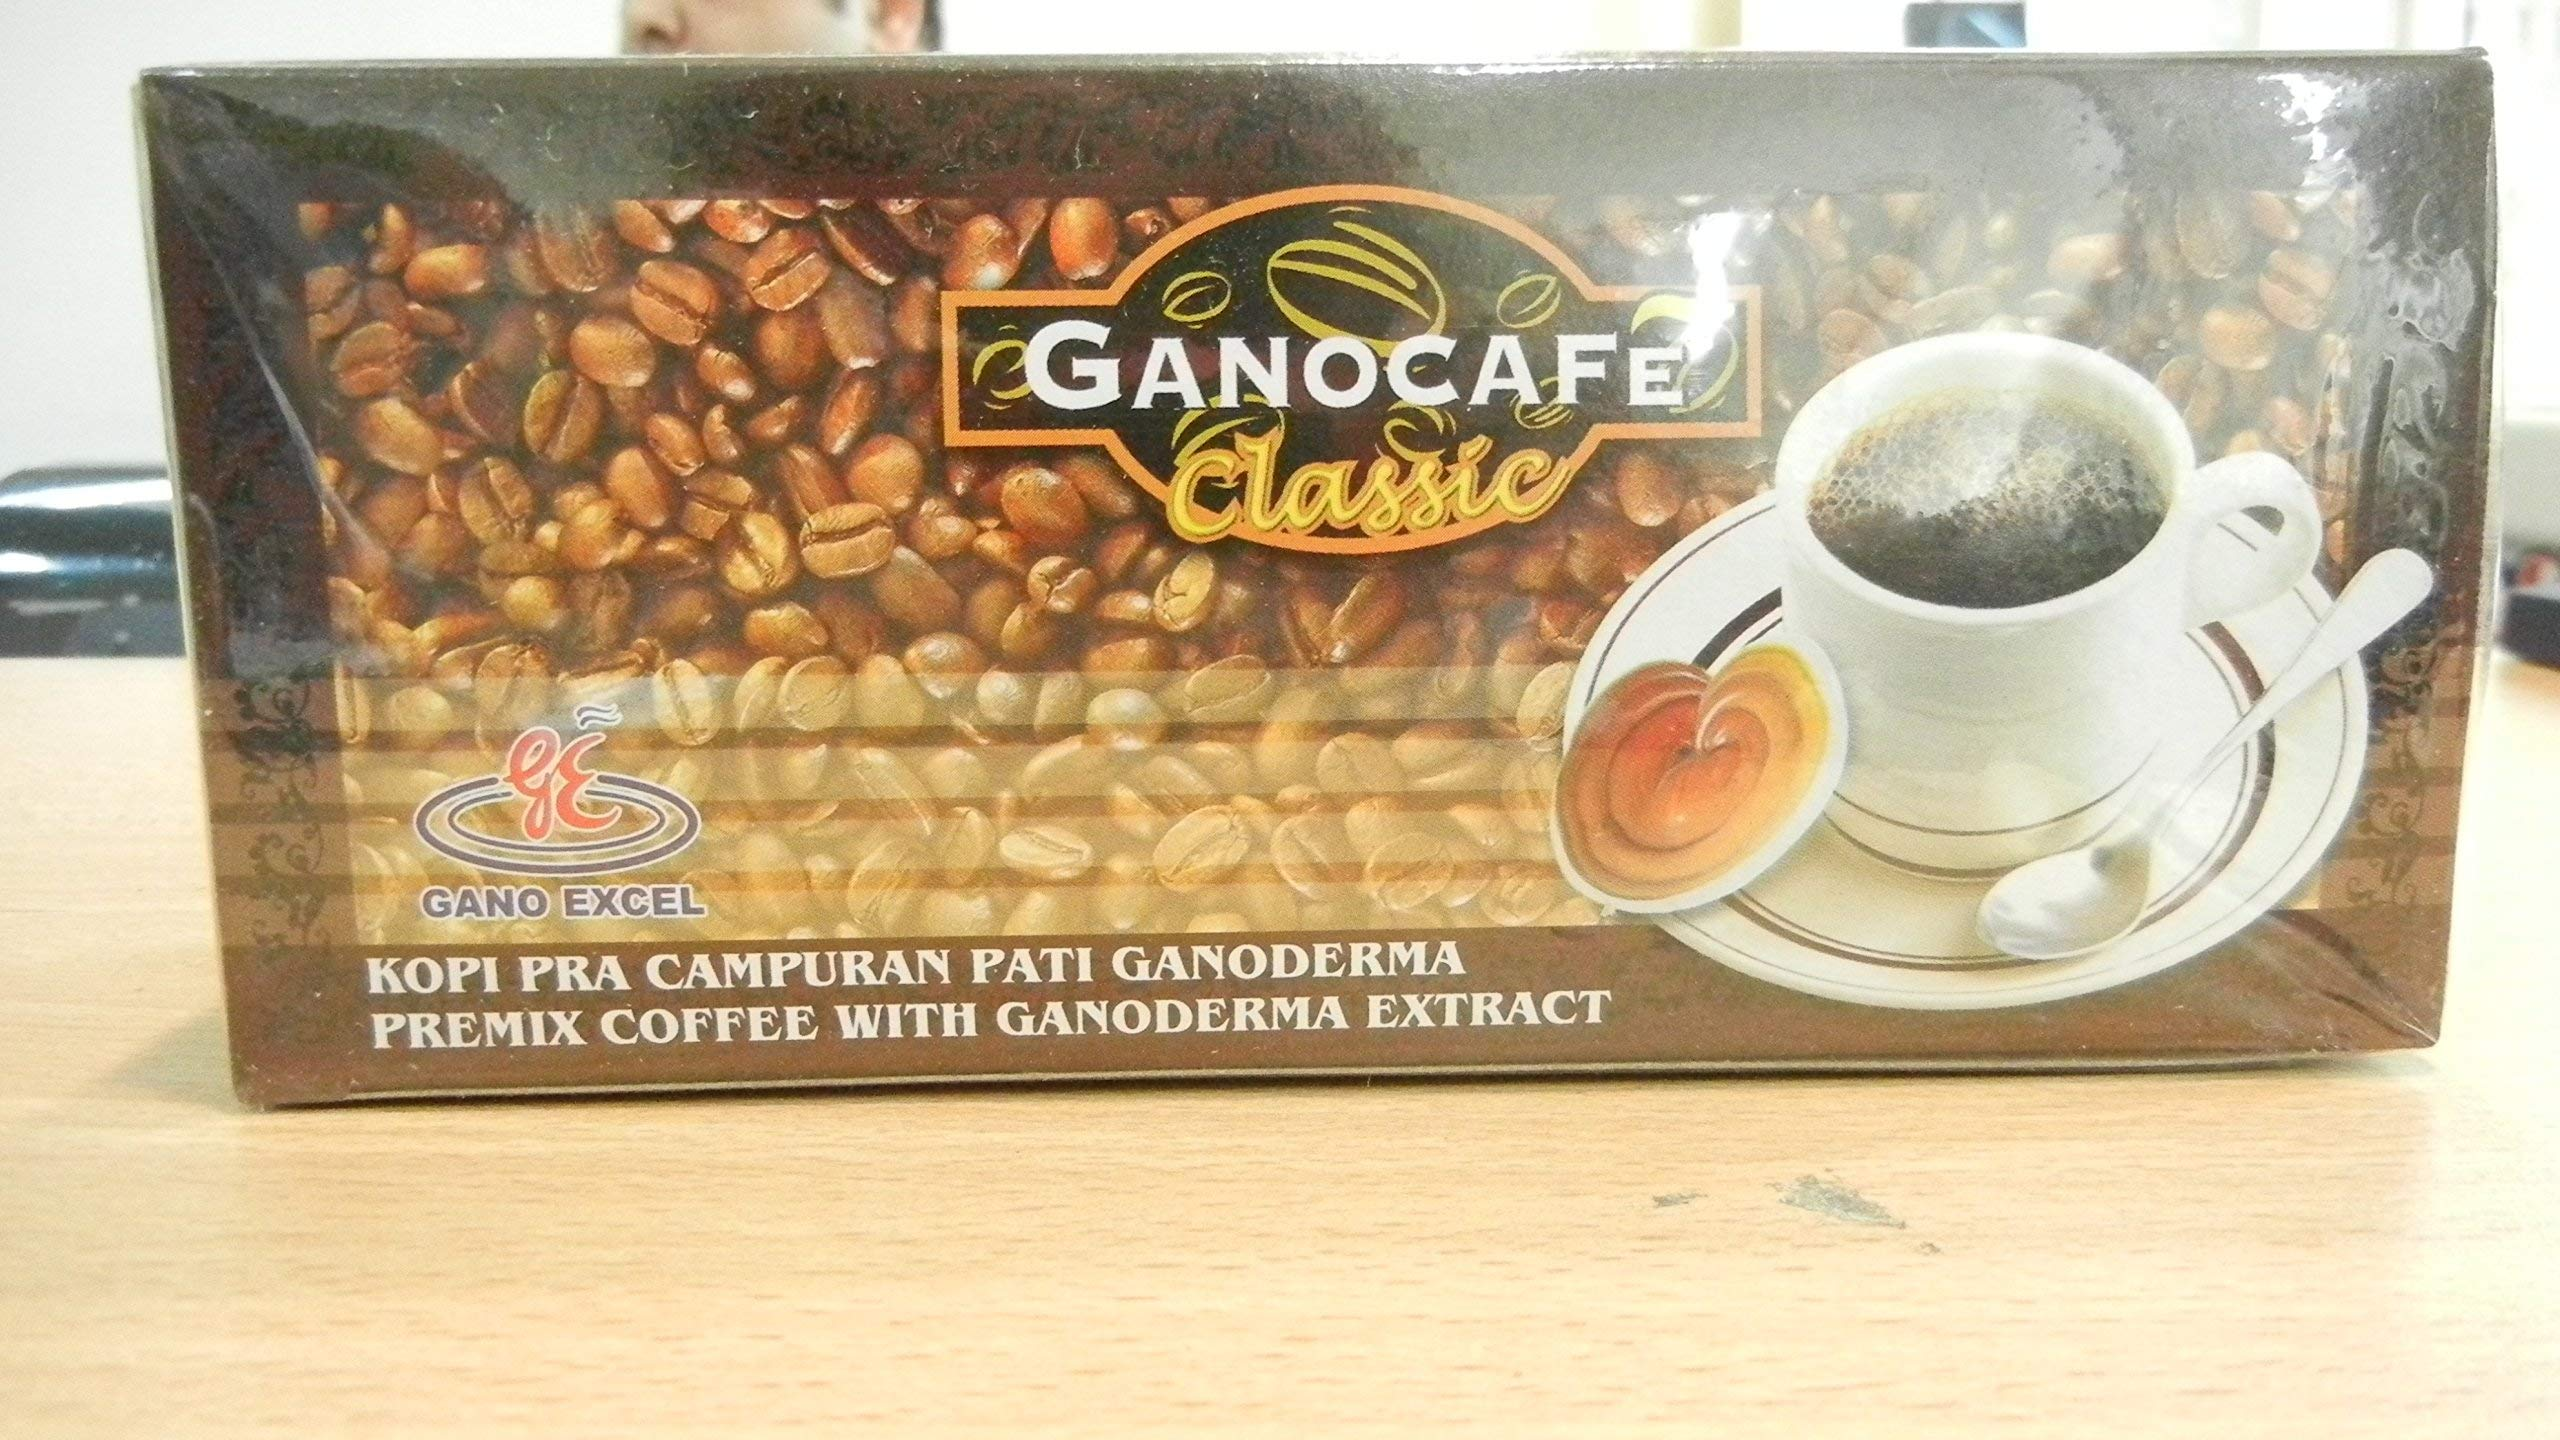 10 Boxes - GANO EXCEL GANOCAFE CLASSIC GANODERMA HEALTHY COFFEE Total 300 Sachets by GANOCAFE